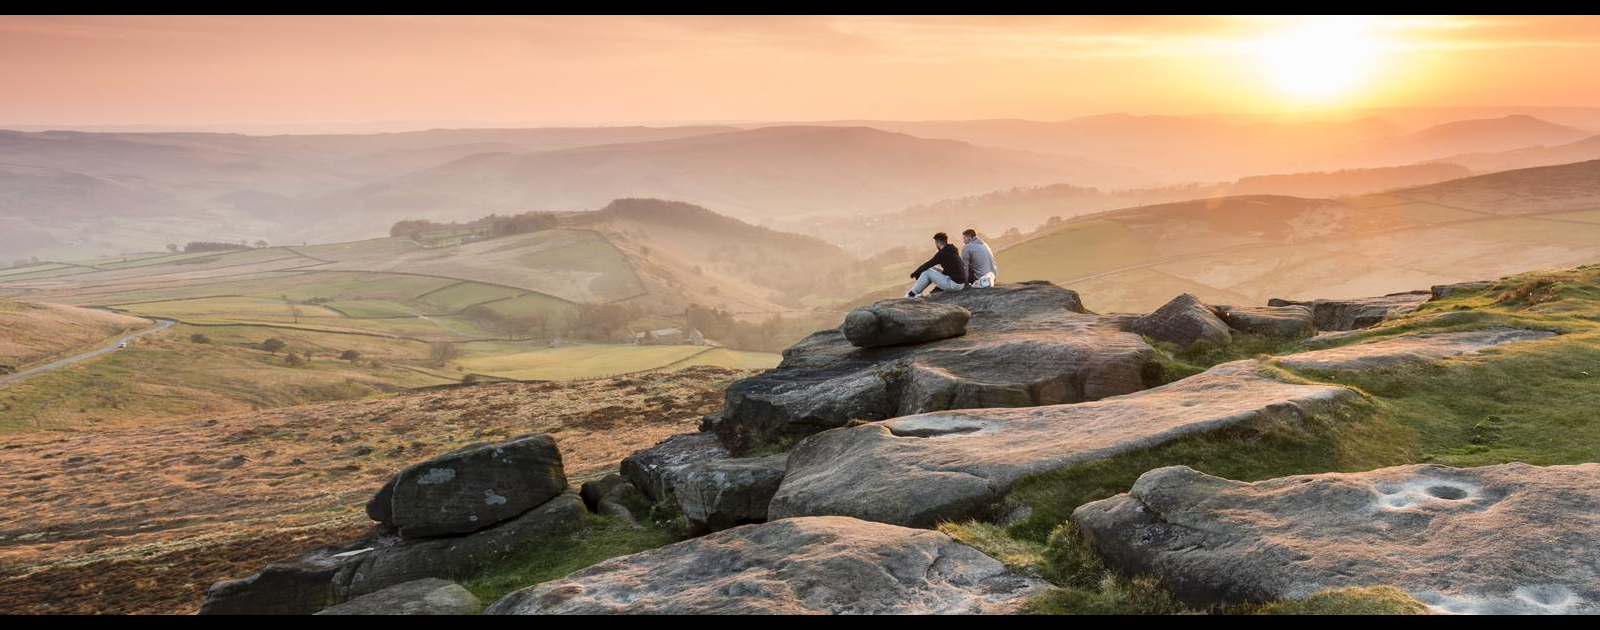 he Edges - gritstone jagged rocks with a lovely view